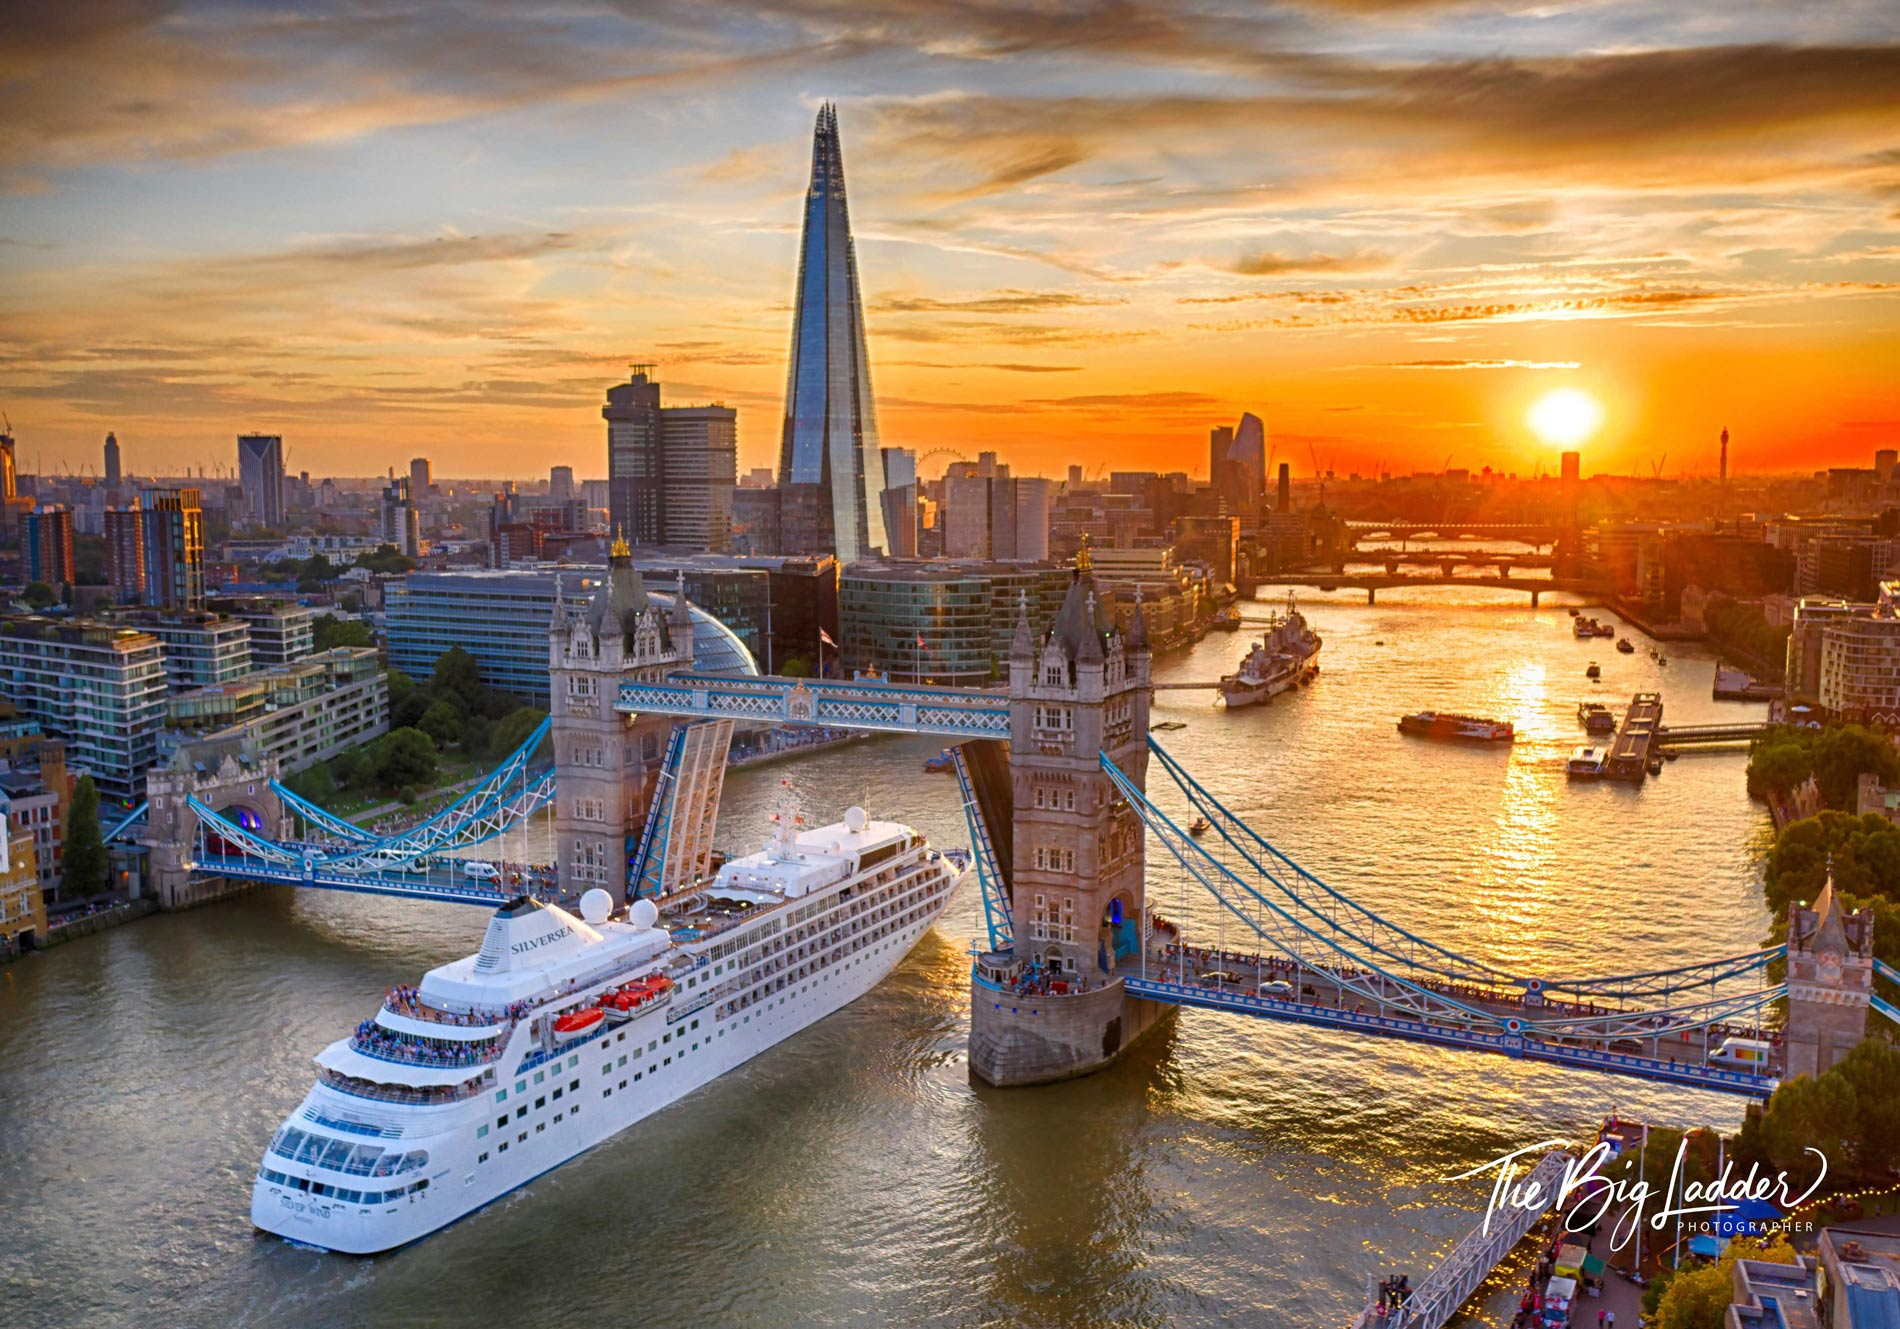 Cruise liner passes through Tower Bridge.